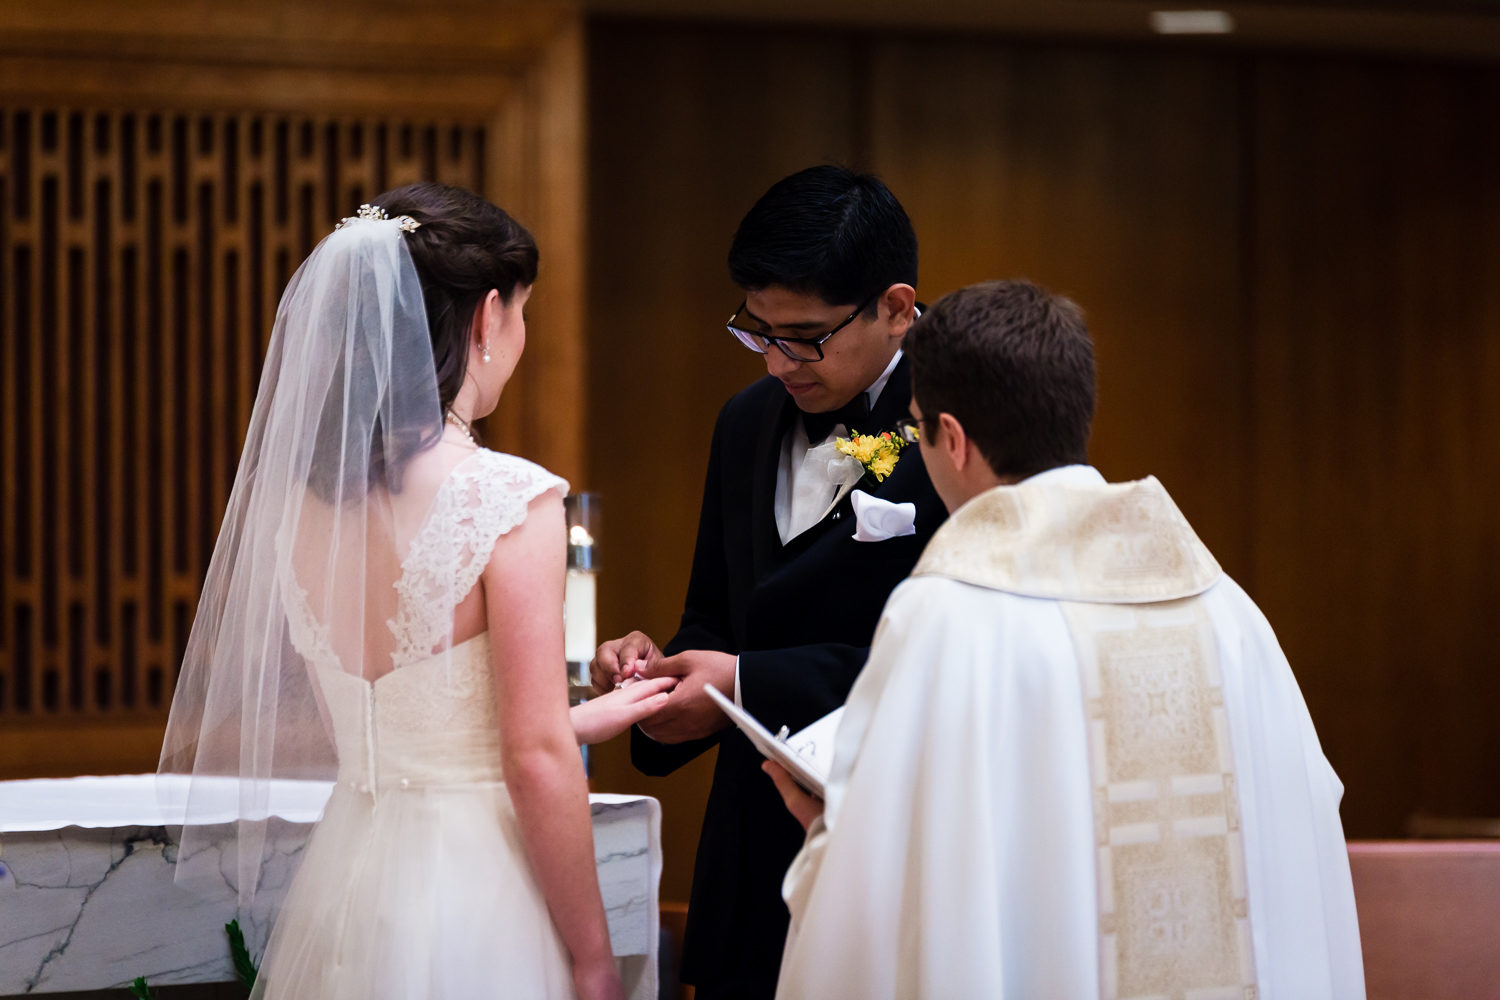 Groom putting wedding ring on the bride.